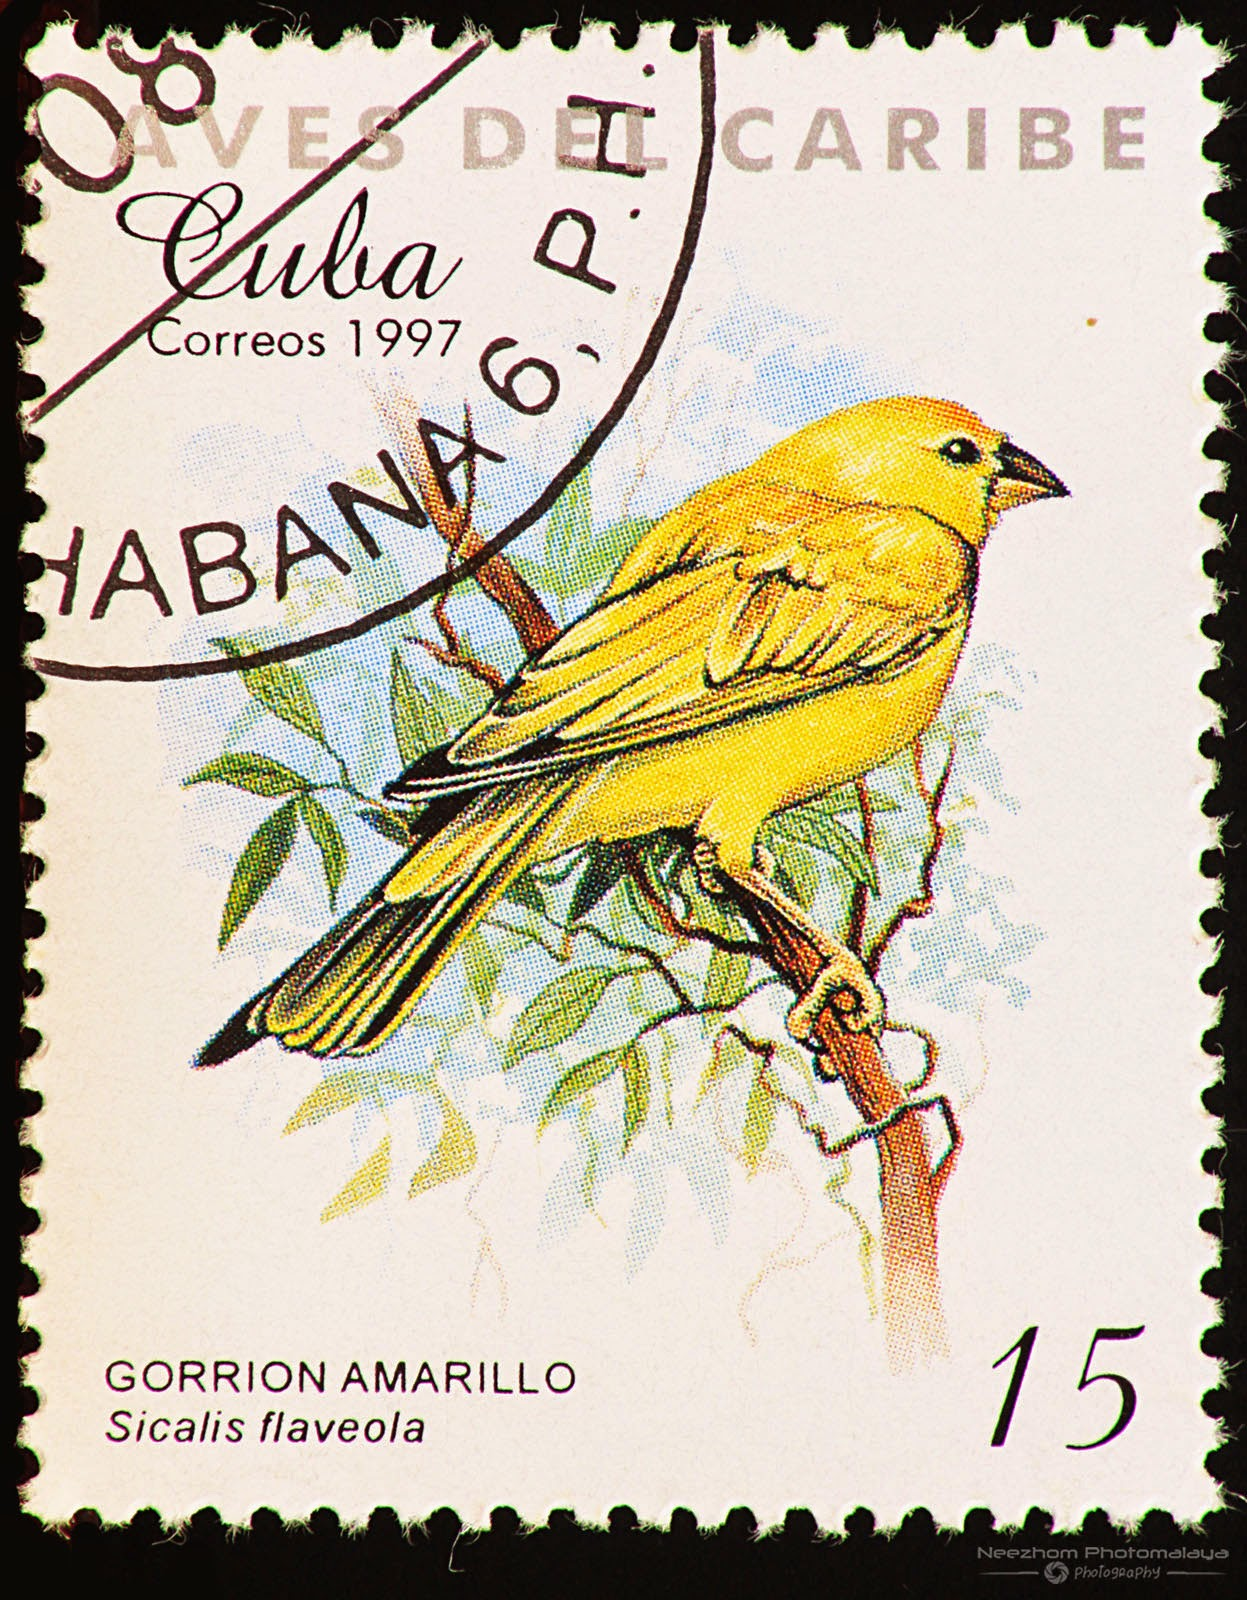 Cuba 1997 Birds of the Caribbean stamp - Saffron Finch (Sicalis flaveola) 15 c